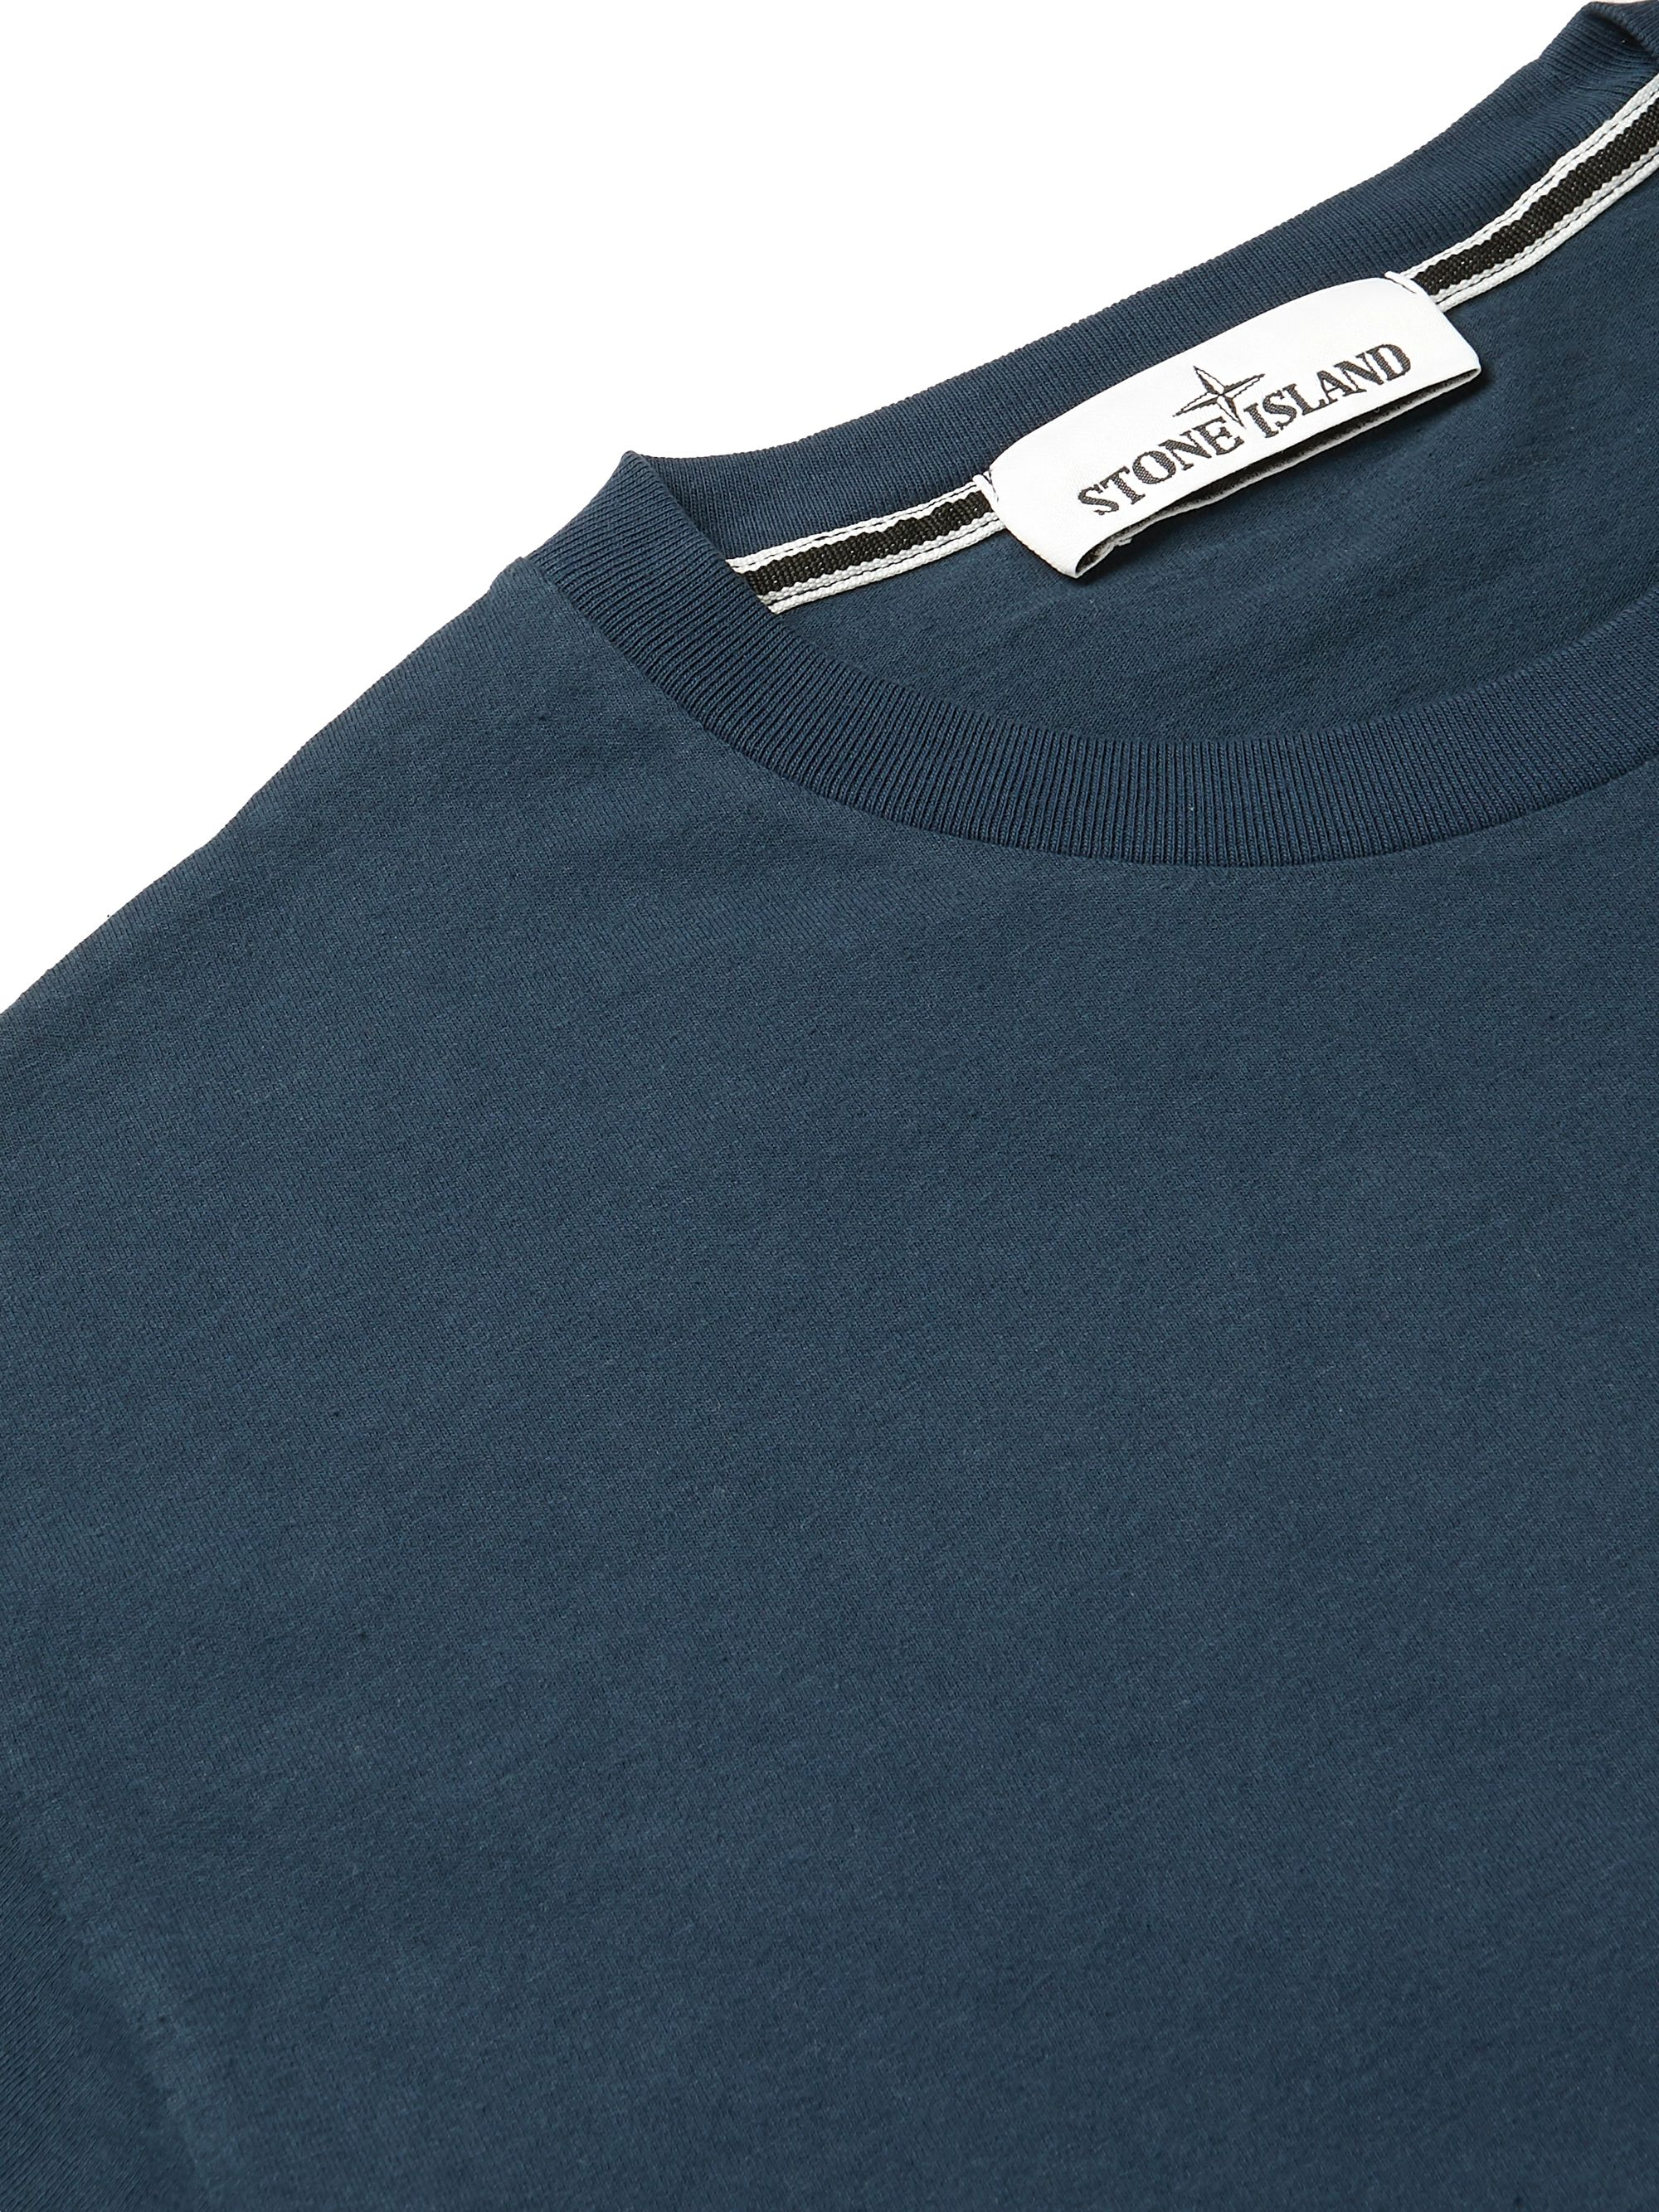 Stone Island Slim-Fit Printed Cotton-Jersey T-Shirt